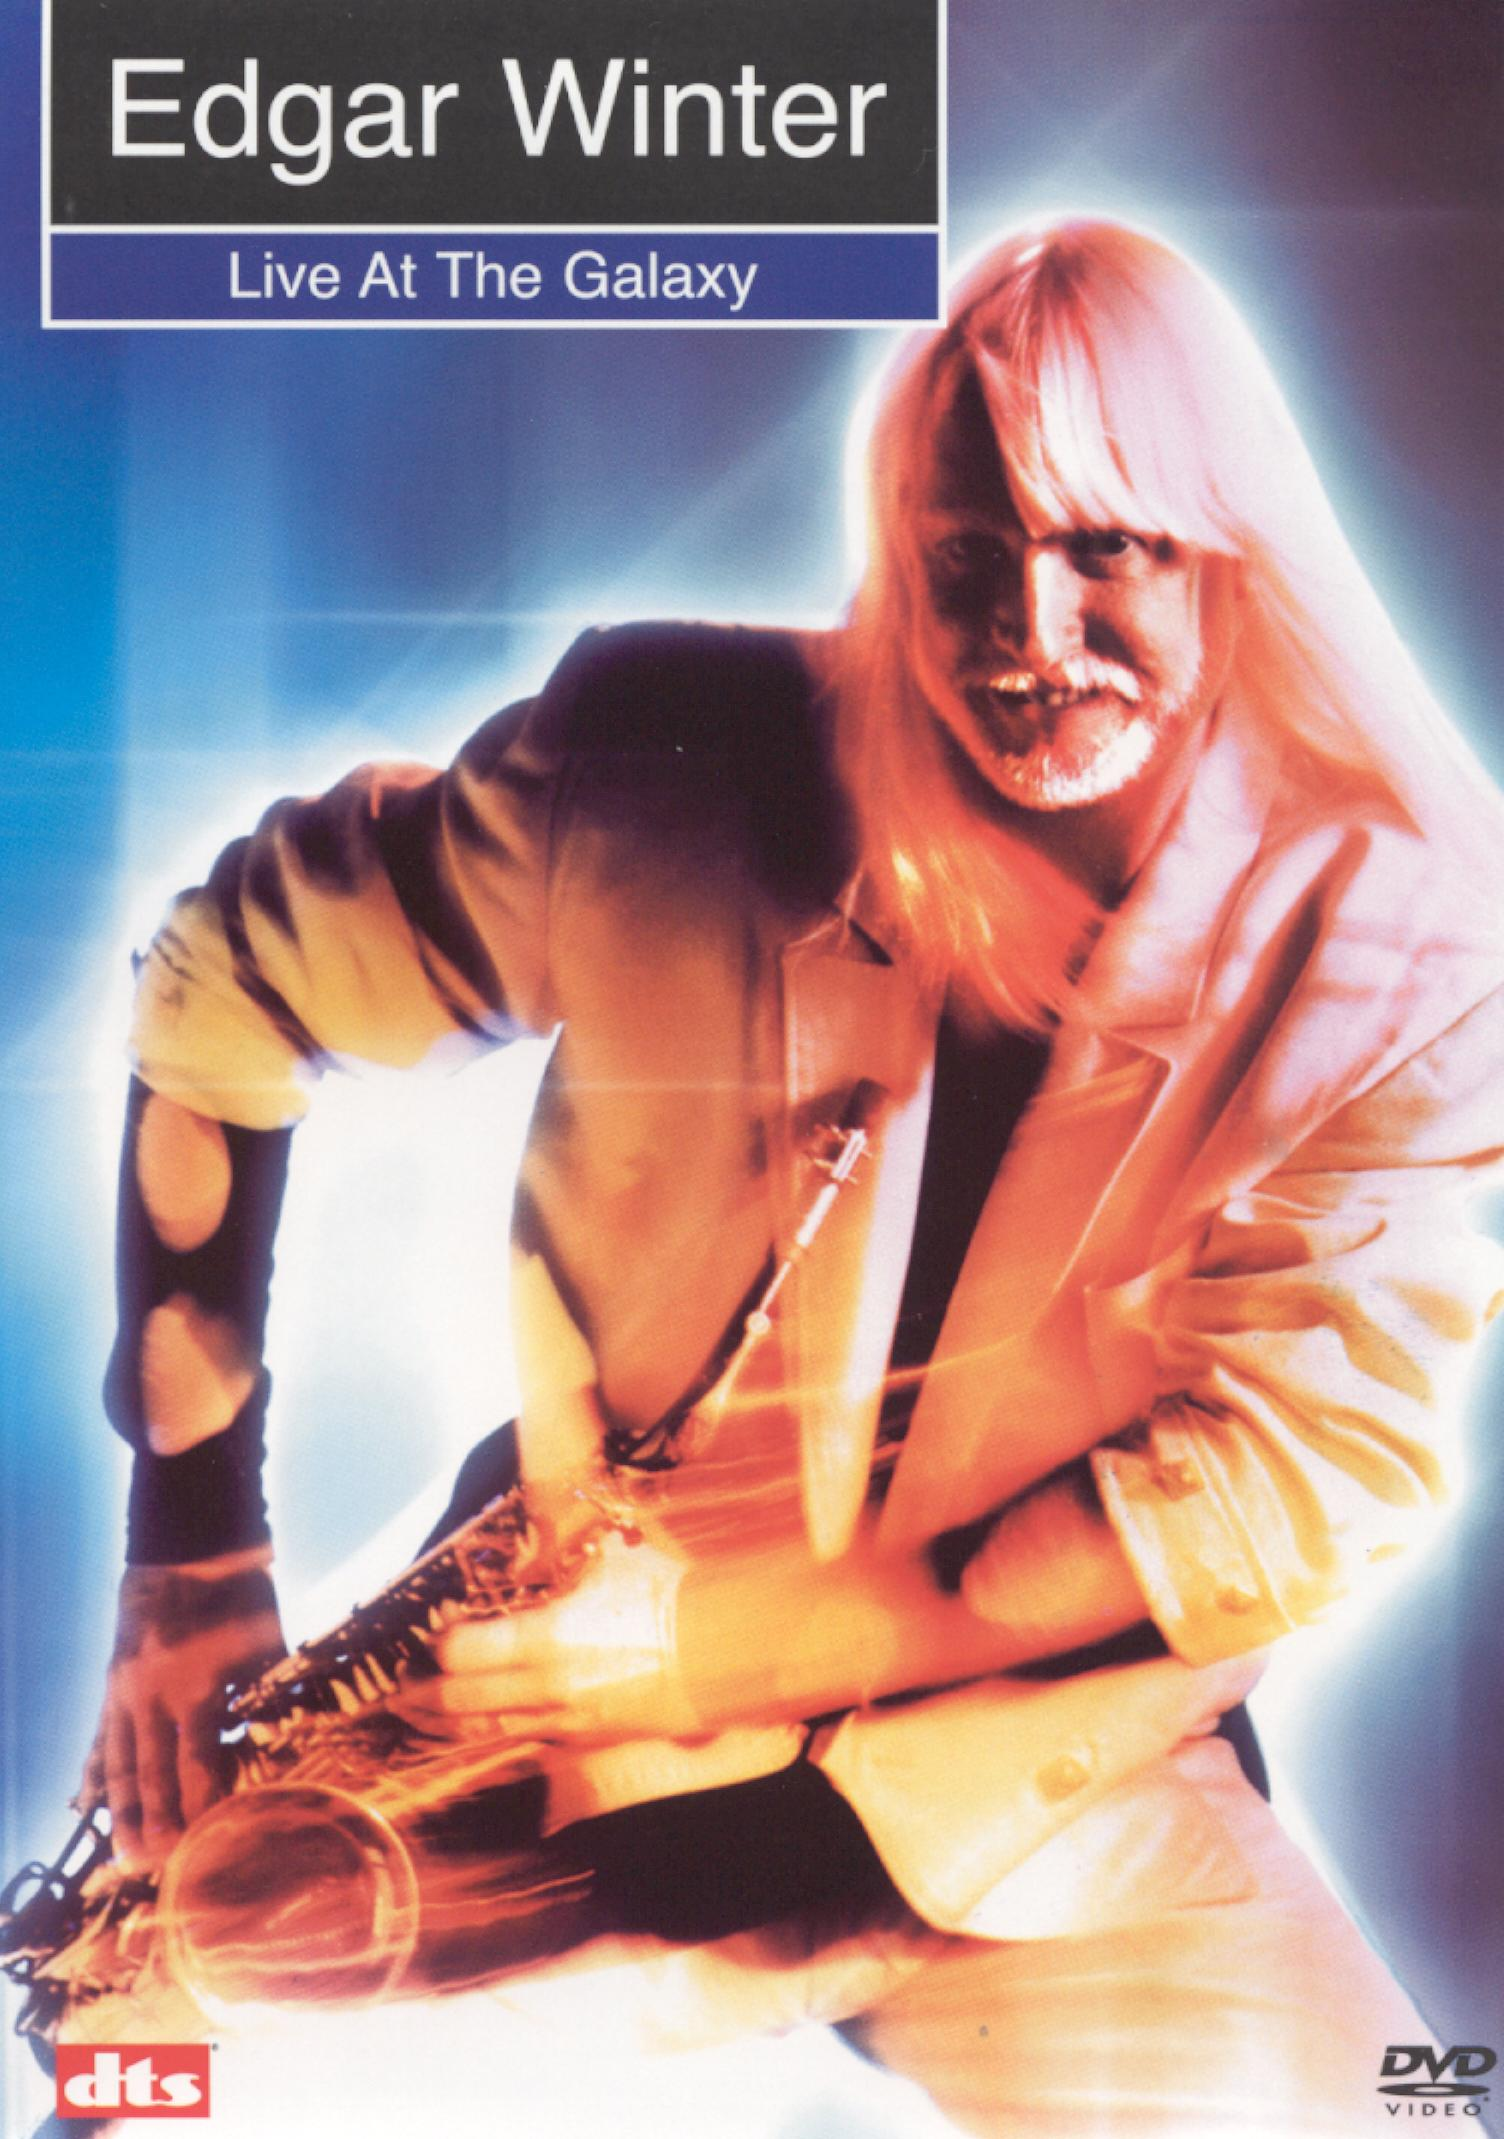 Edgar Winter: Live at the Galaxy